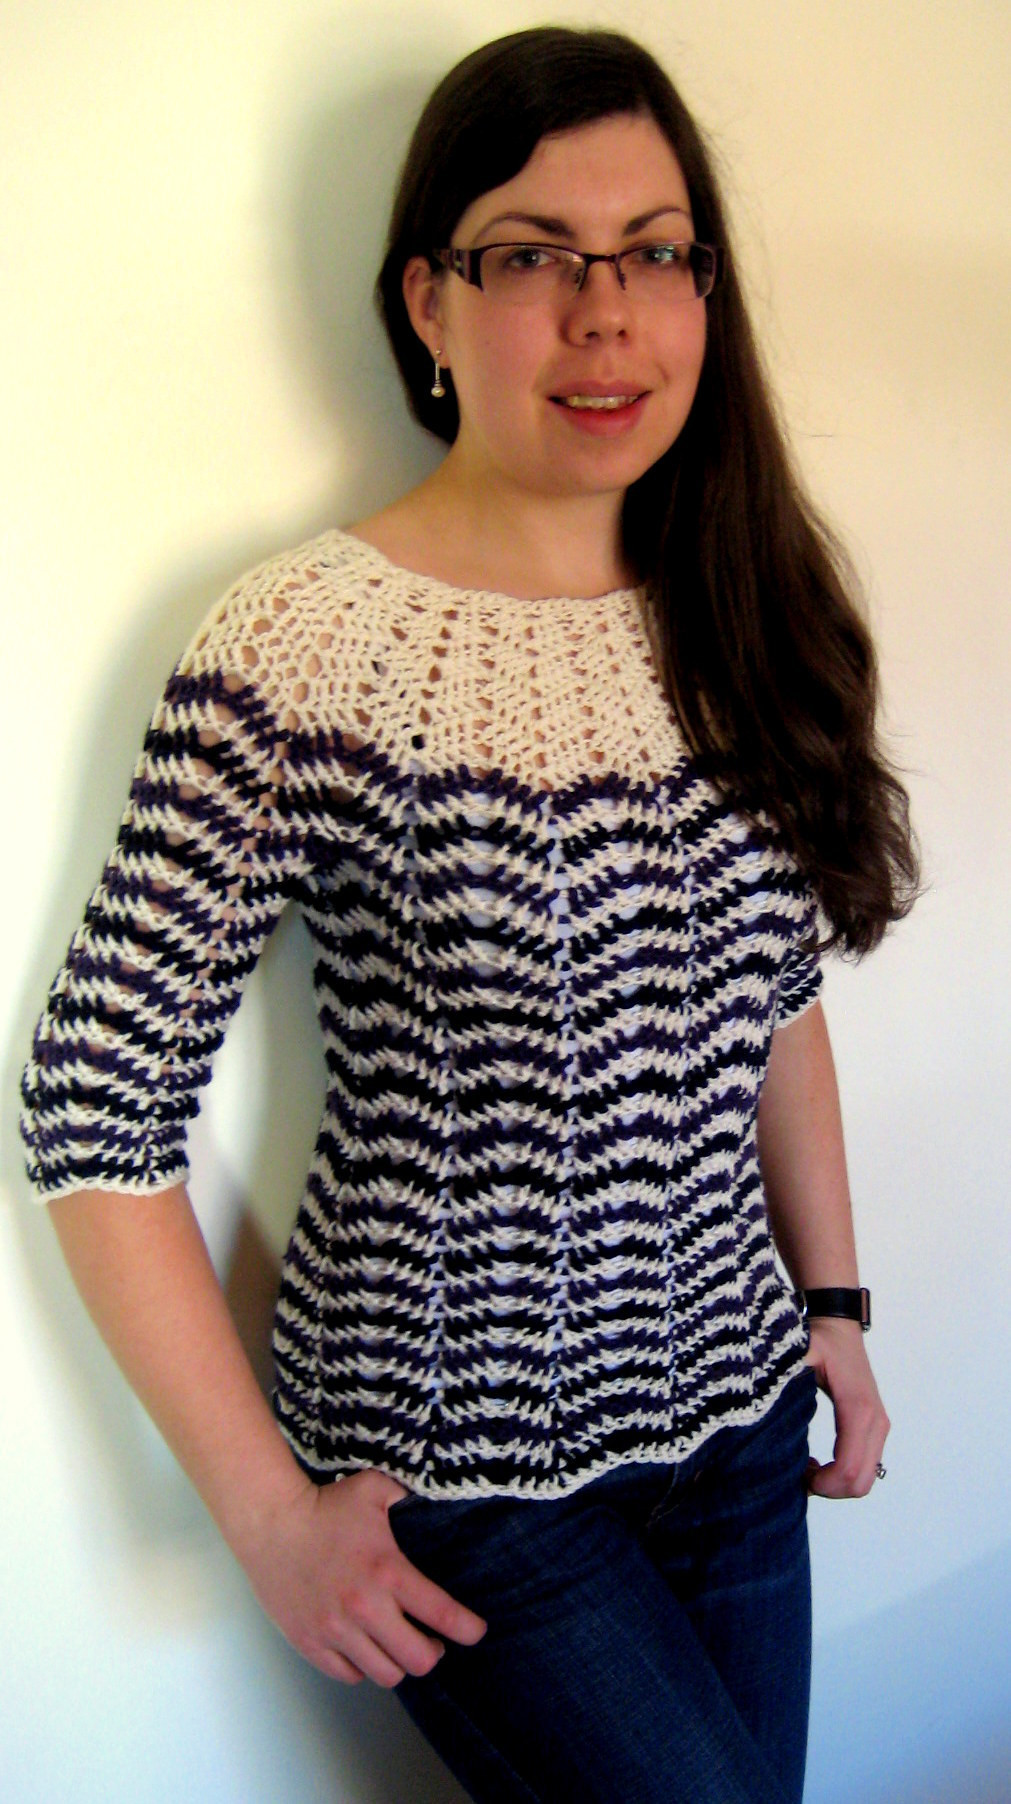 Crochet Hoodie Lovely Chevron Stripes 3 Season Sweater Of Awesome 43 Images Crochet Hoodie